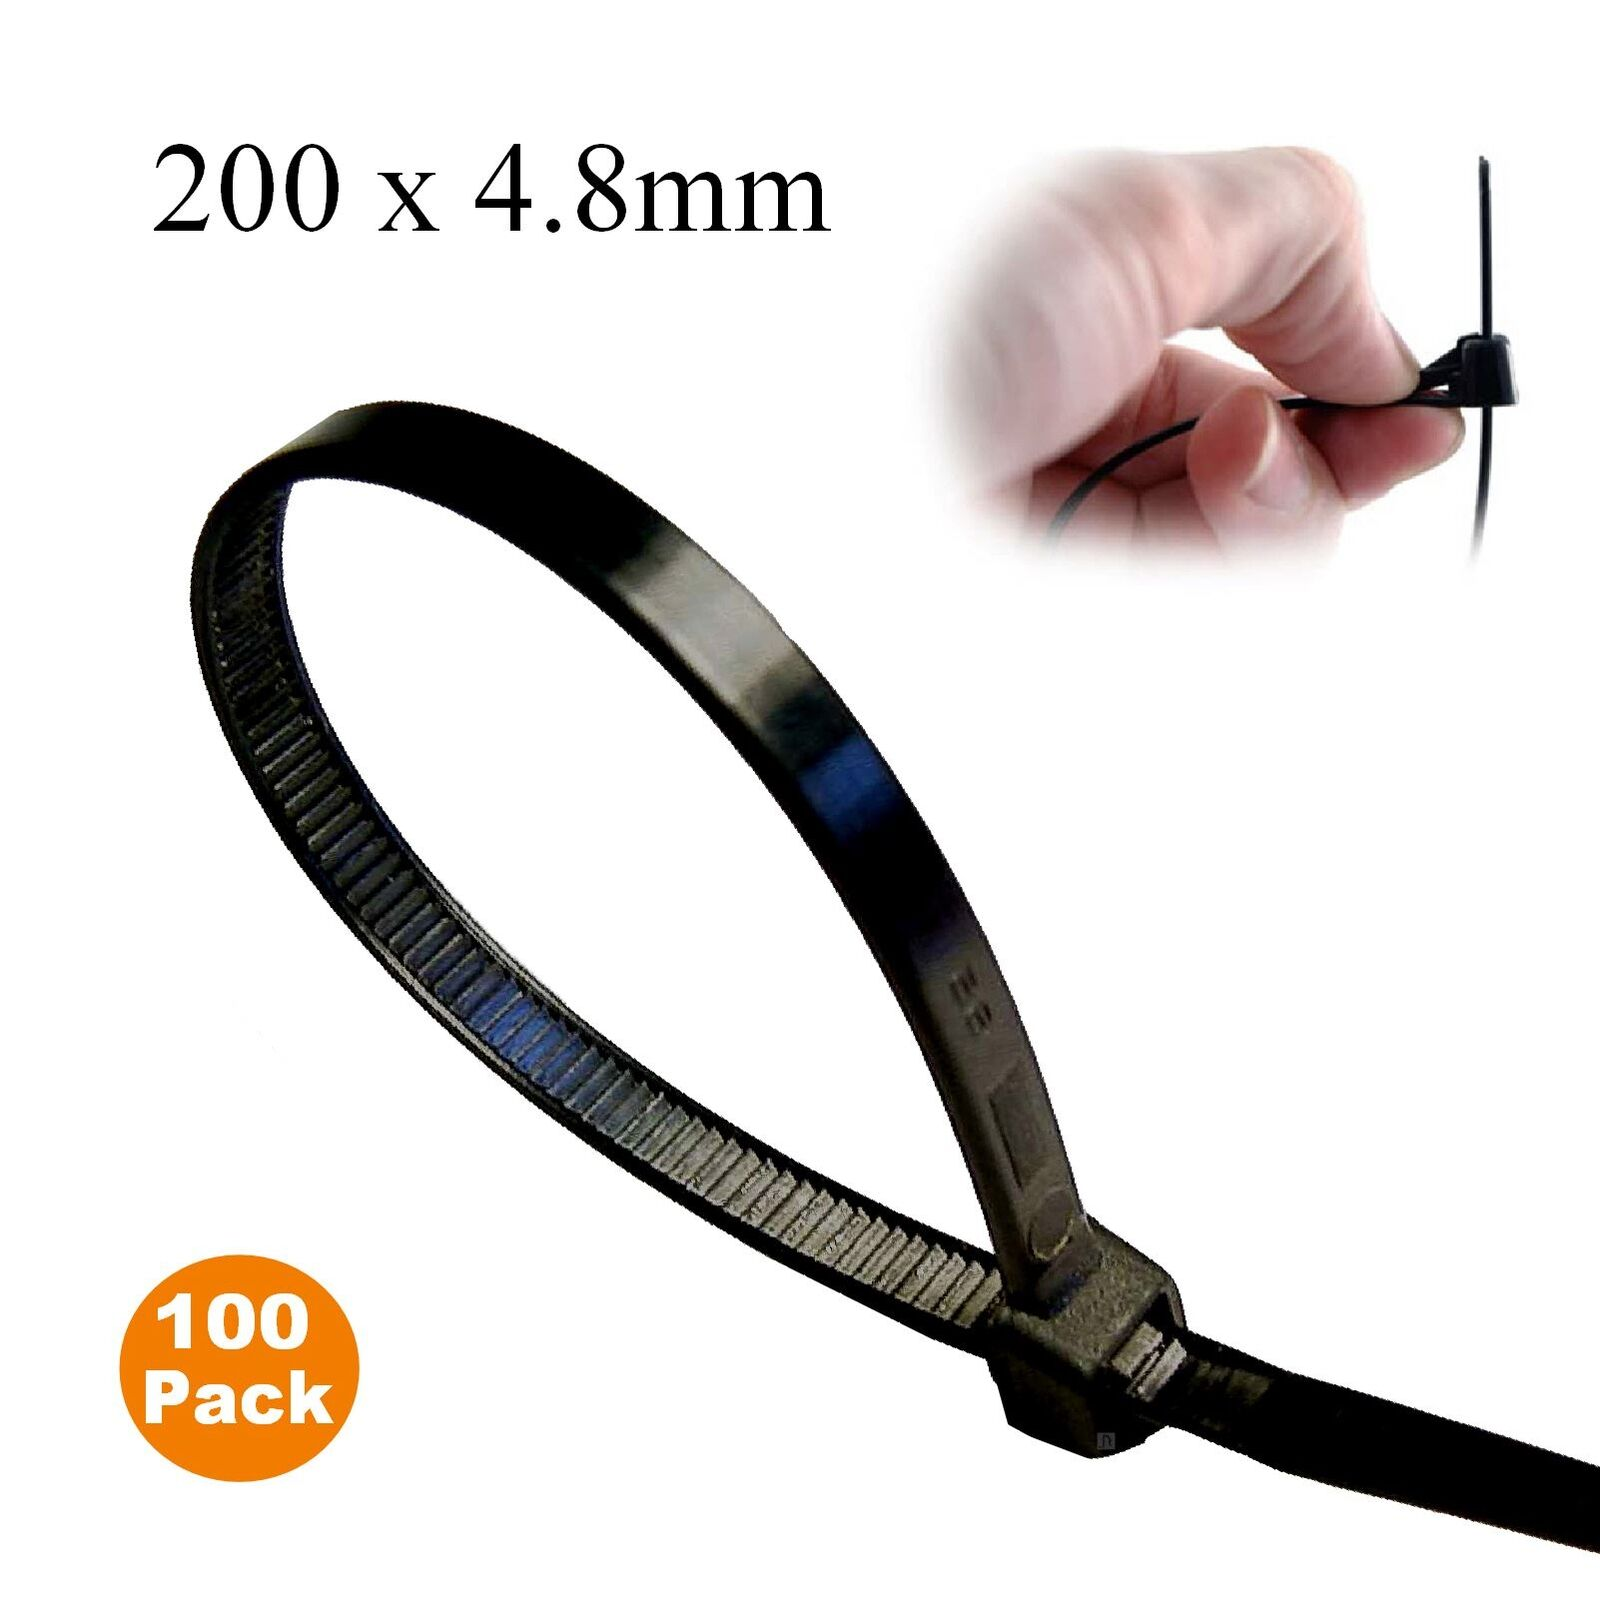 100 x Black Releasable Cable Ties 200mm x 4.8mm Reusable Wire Tidy Zip Straps